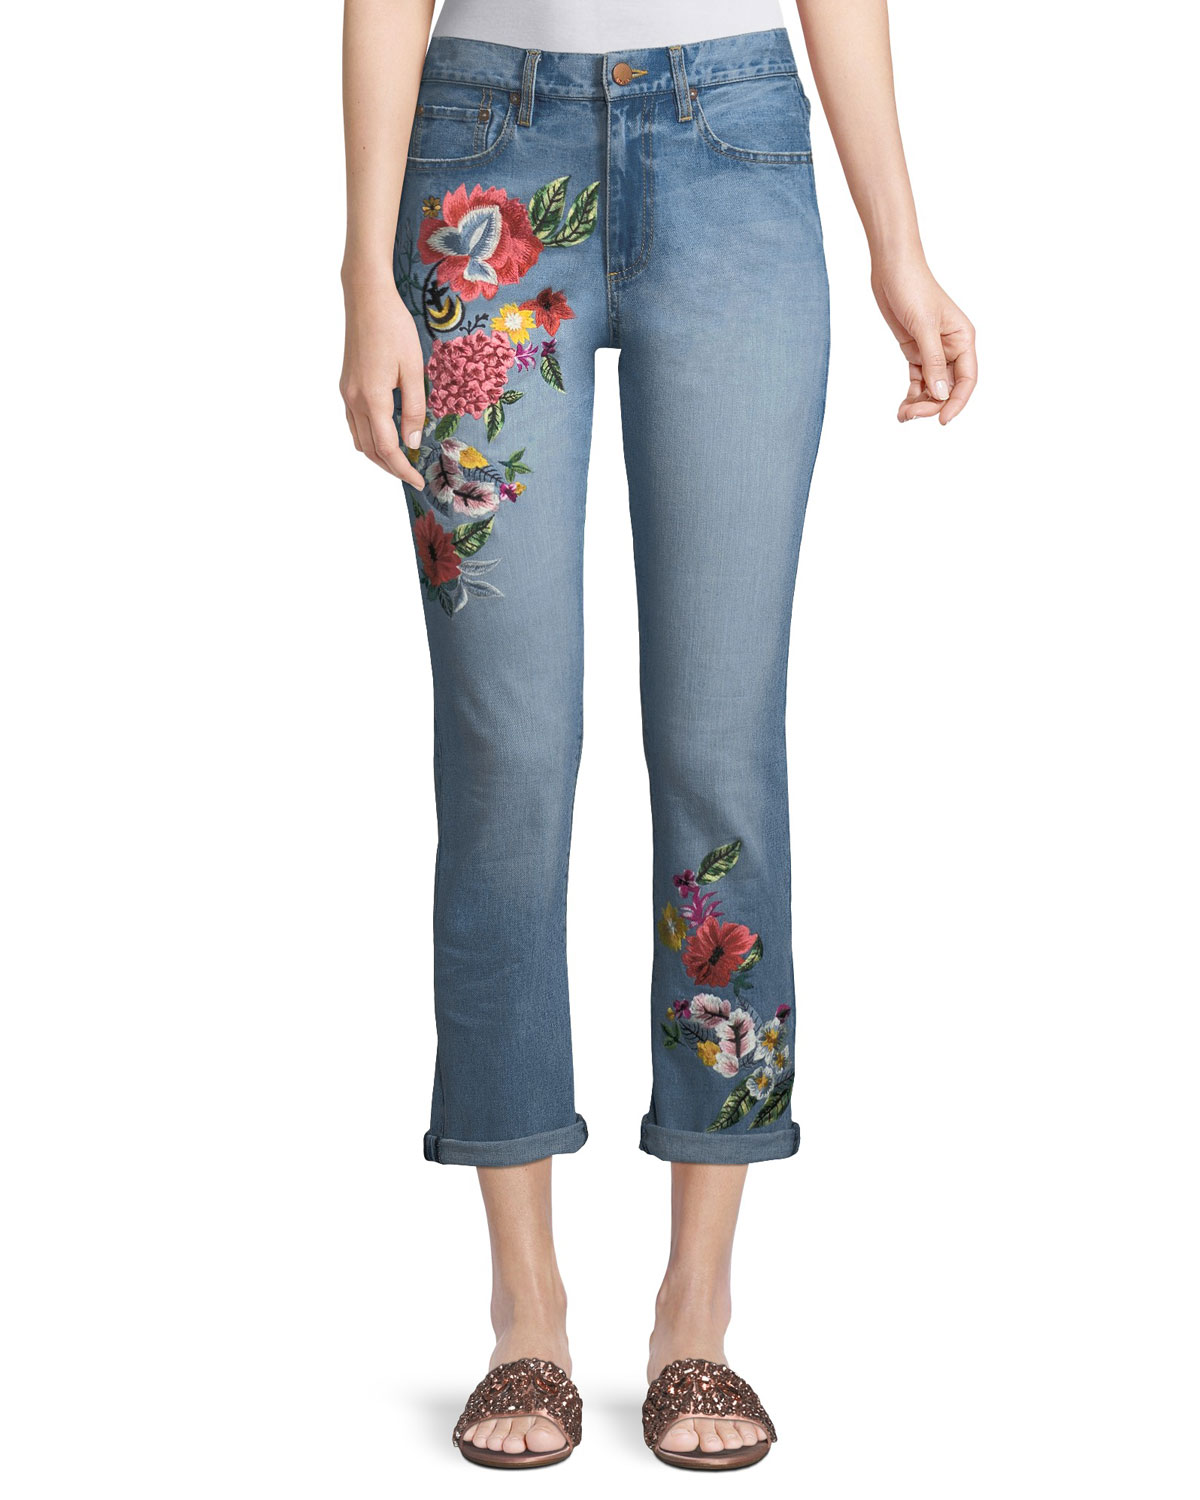 50 Incredible Non Traditional Wedding Dresses Under 500: ALICE + OLIVIA JEANS Amazing Floral-Embroidered High-Rise